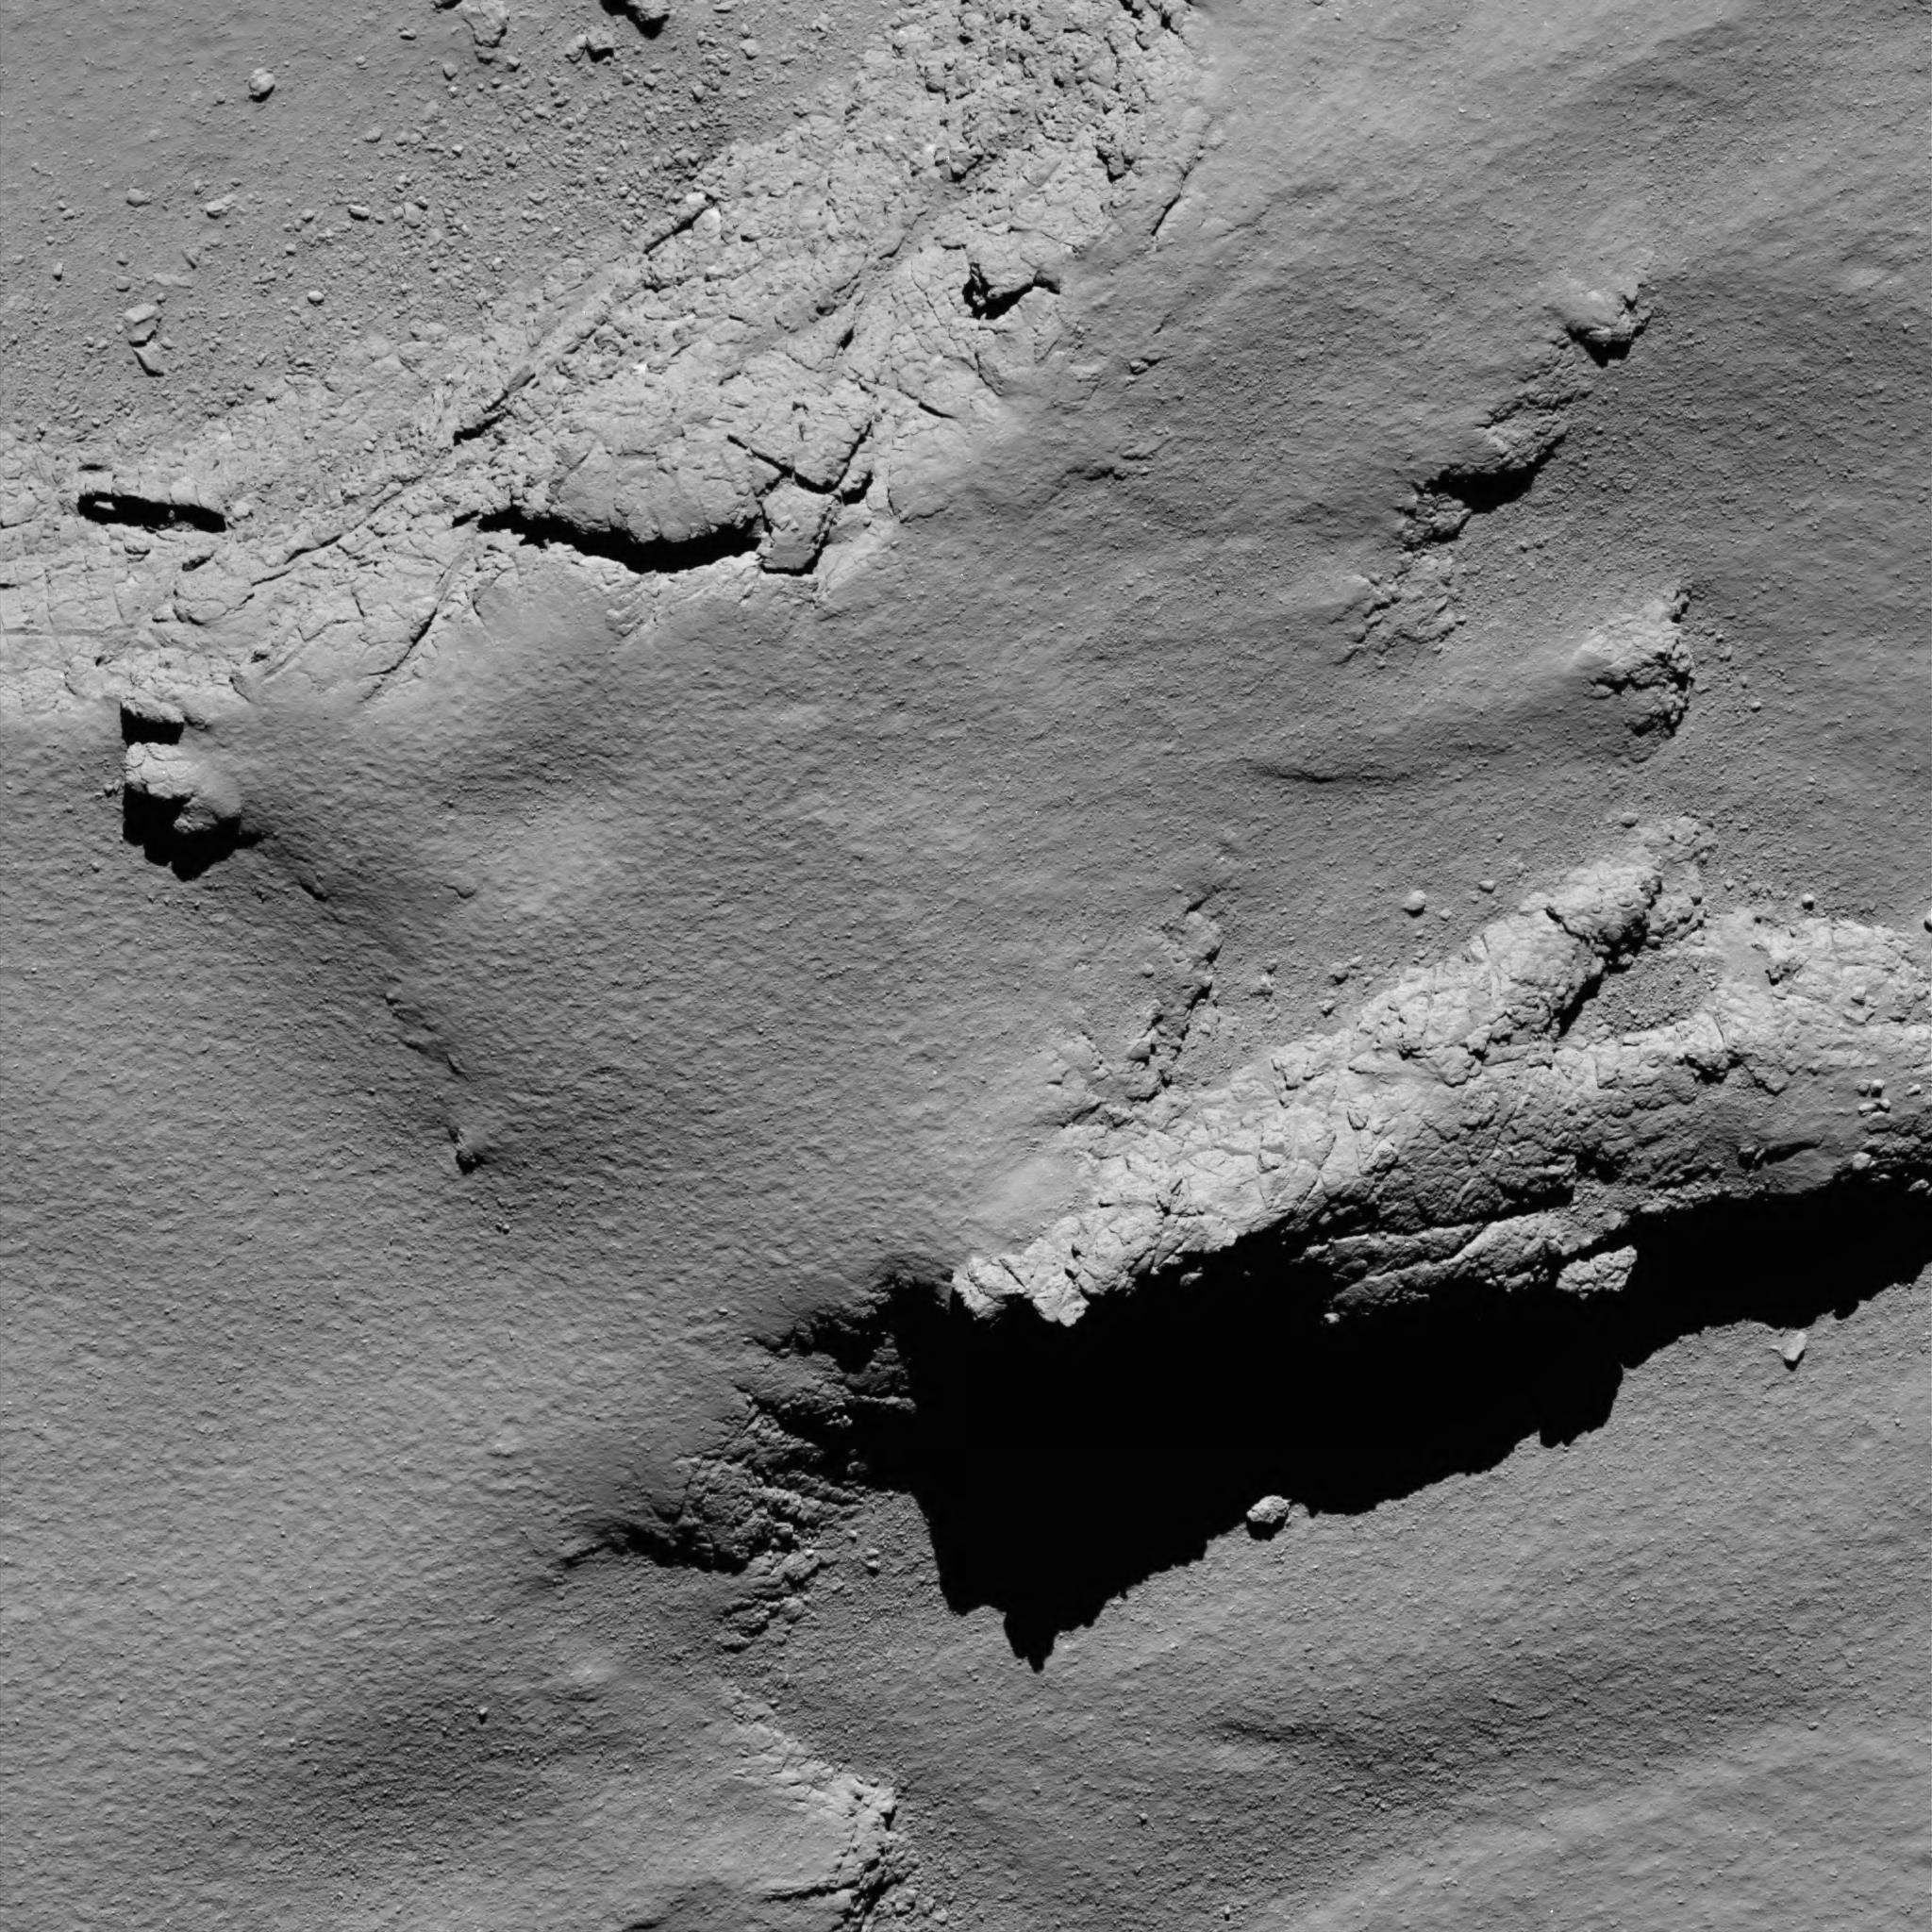 is_rosetta_atterrisage_comet_from_5.7_km_narrow-angle_camera.jpg